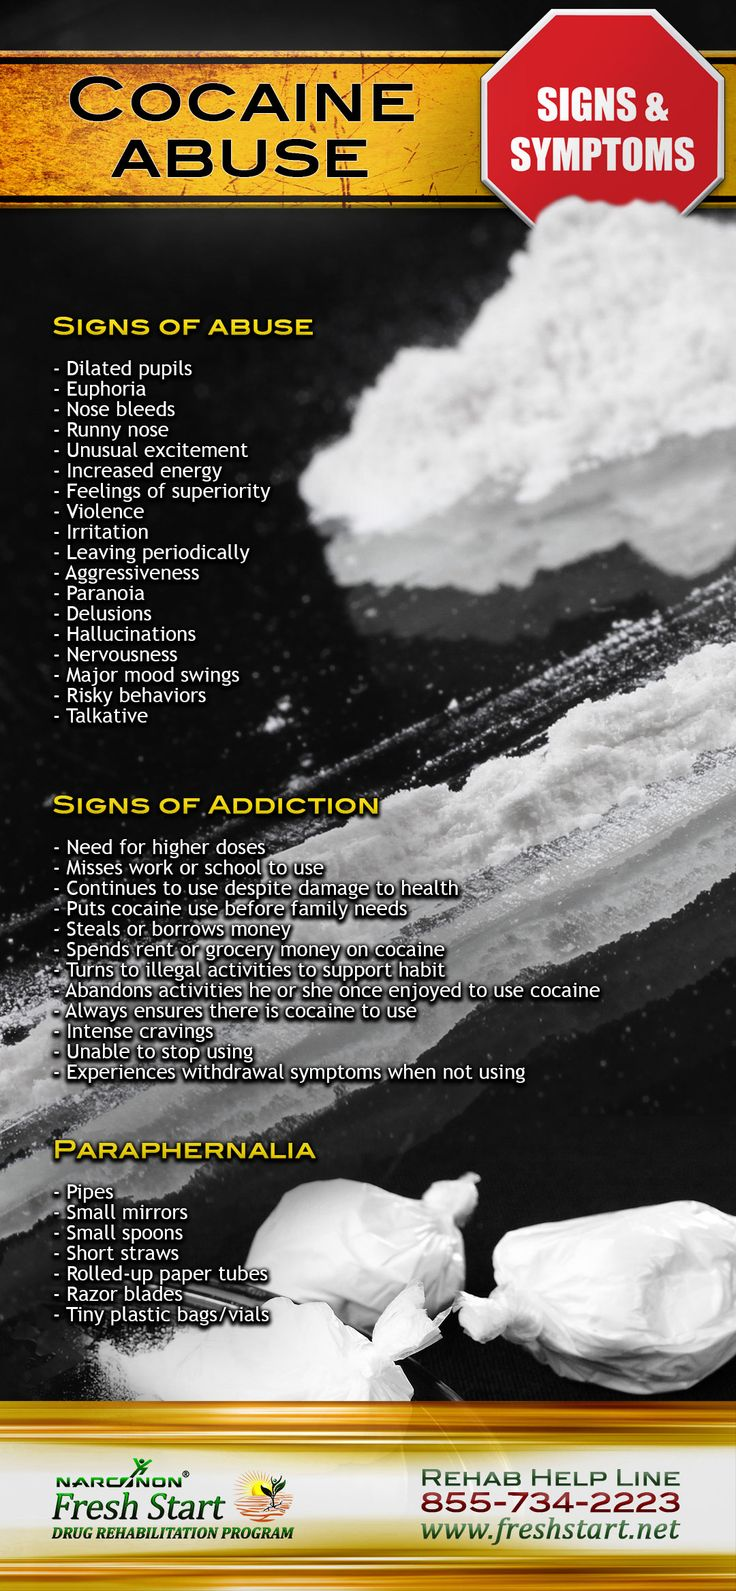 Pin by Narconon Fresh Start on Cocaine | Signs of cocaine ...